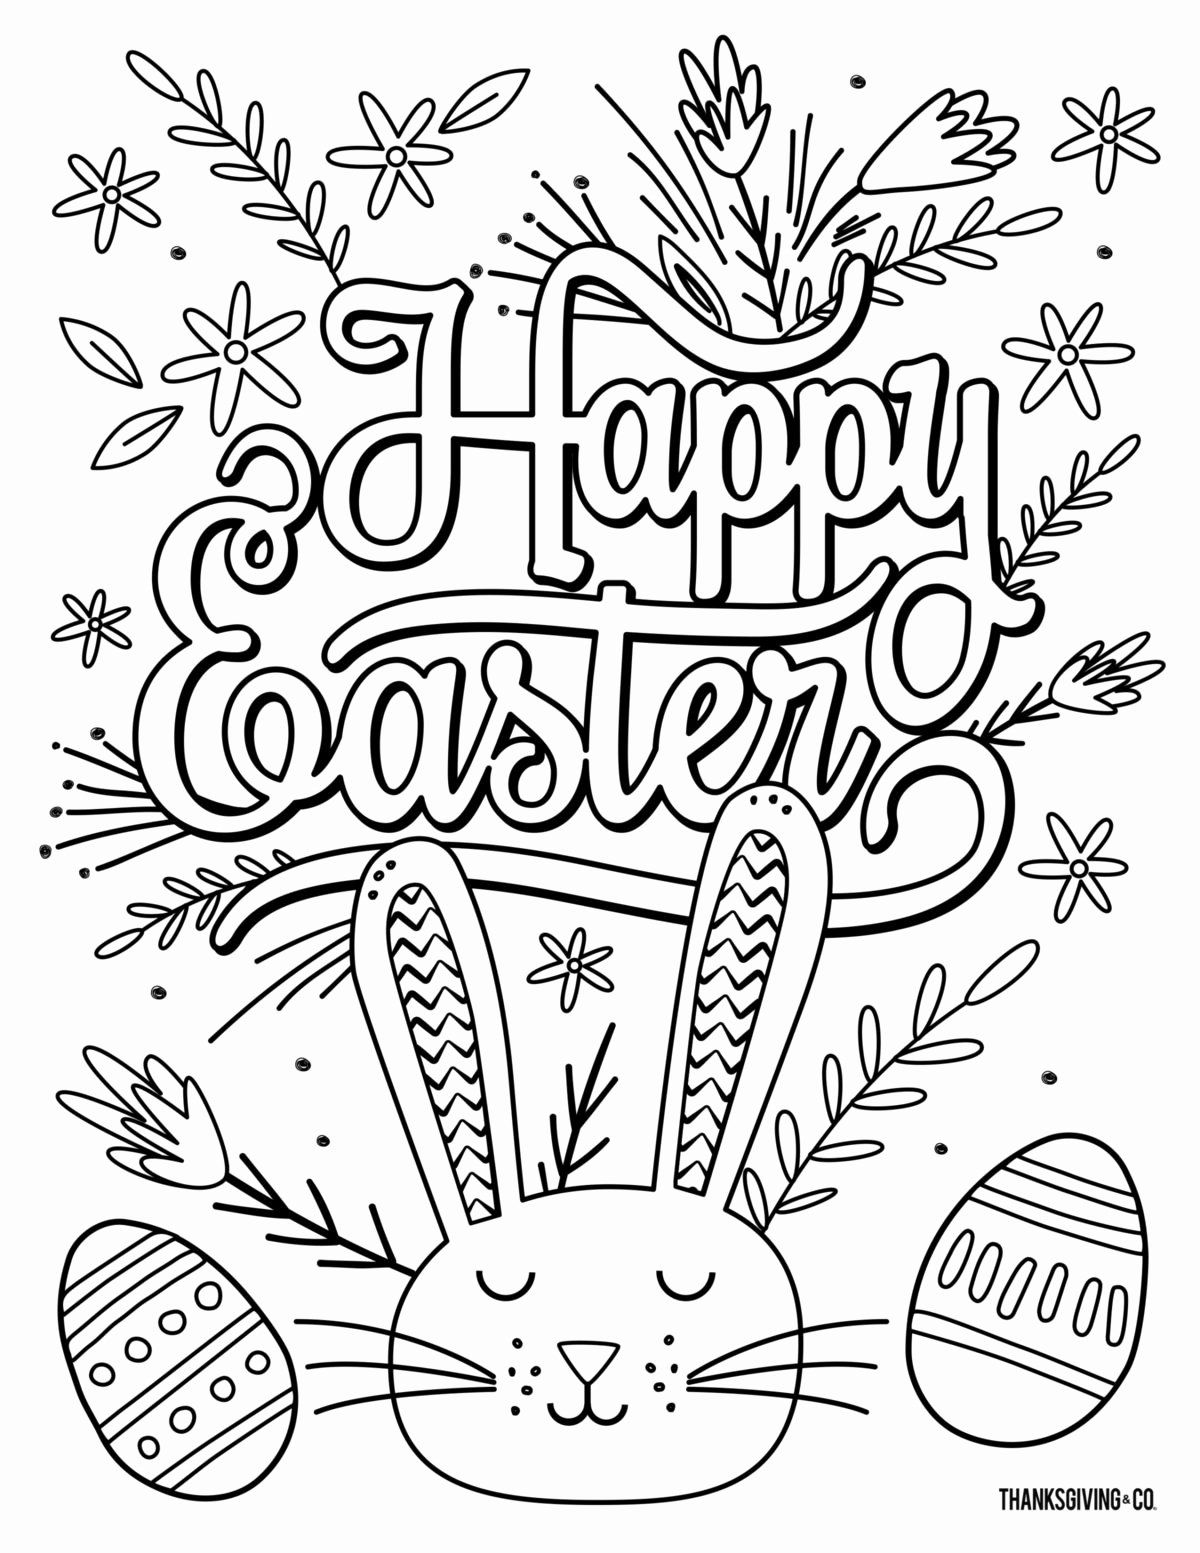 Easter Coloring Book Pages Awesome Coloring Book Ideas 44 Easter Coloring Pages For Adults